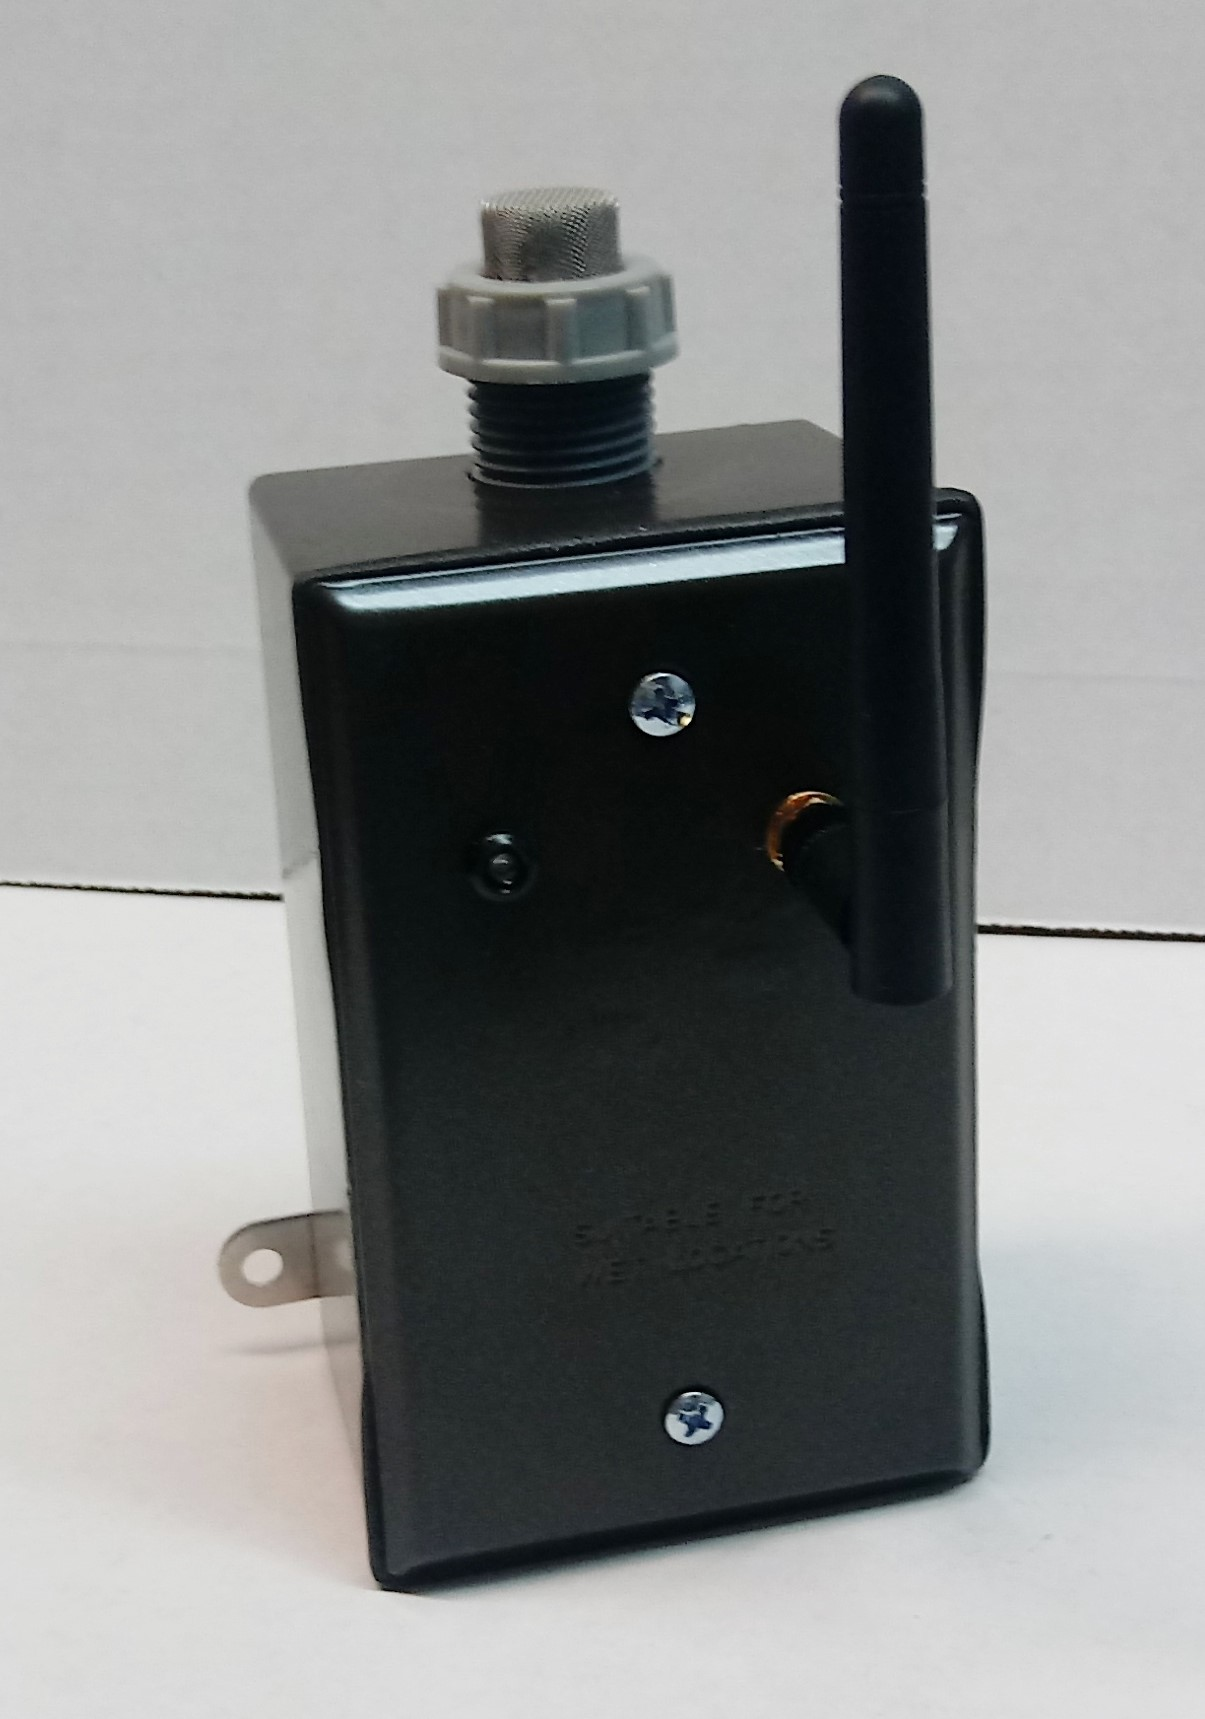 Wireless Relative Humidity (RH) Transmitter